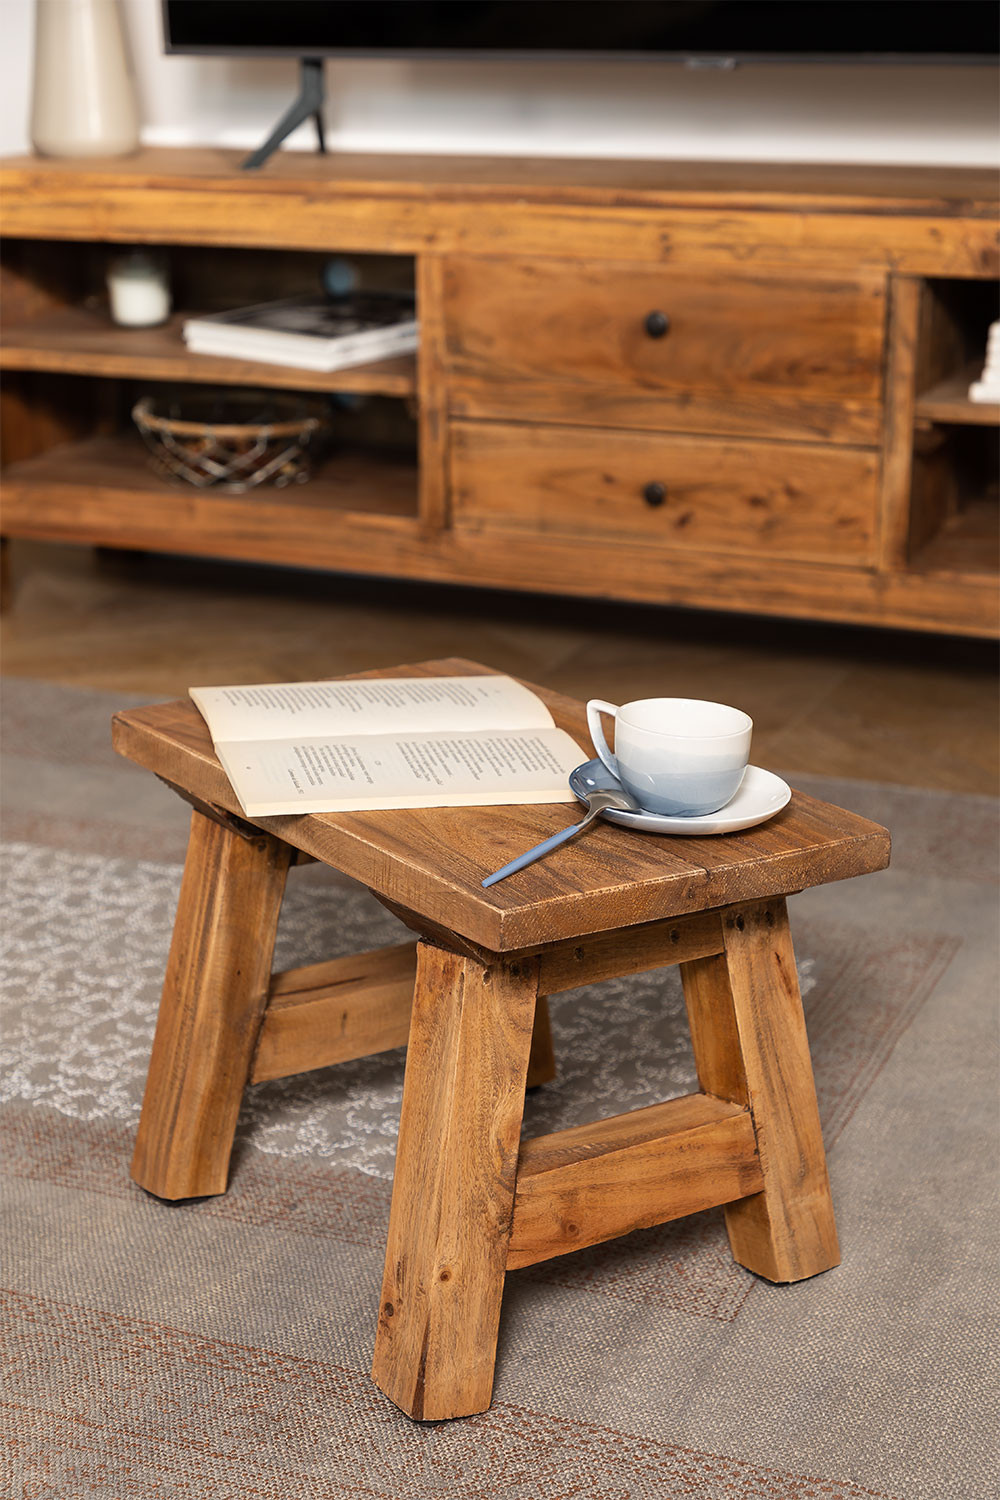 Recycled Wooden Bench Rieve, gallery image 1